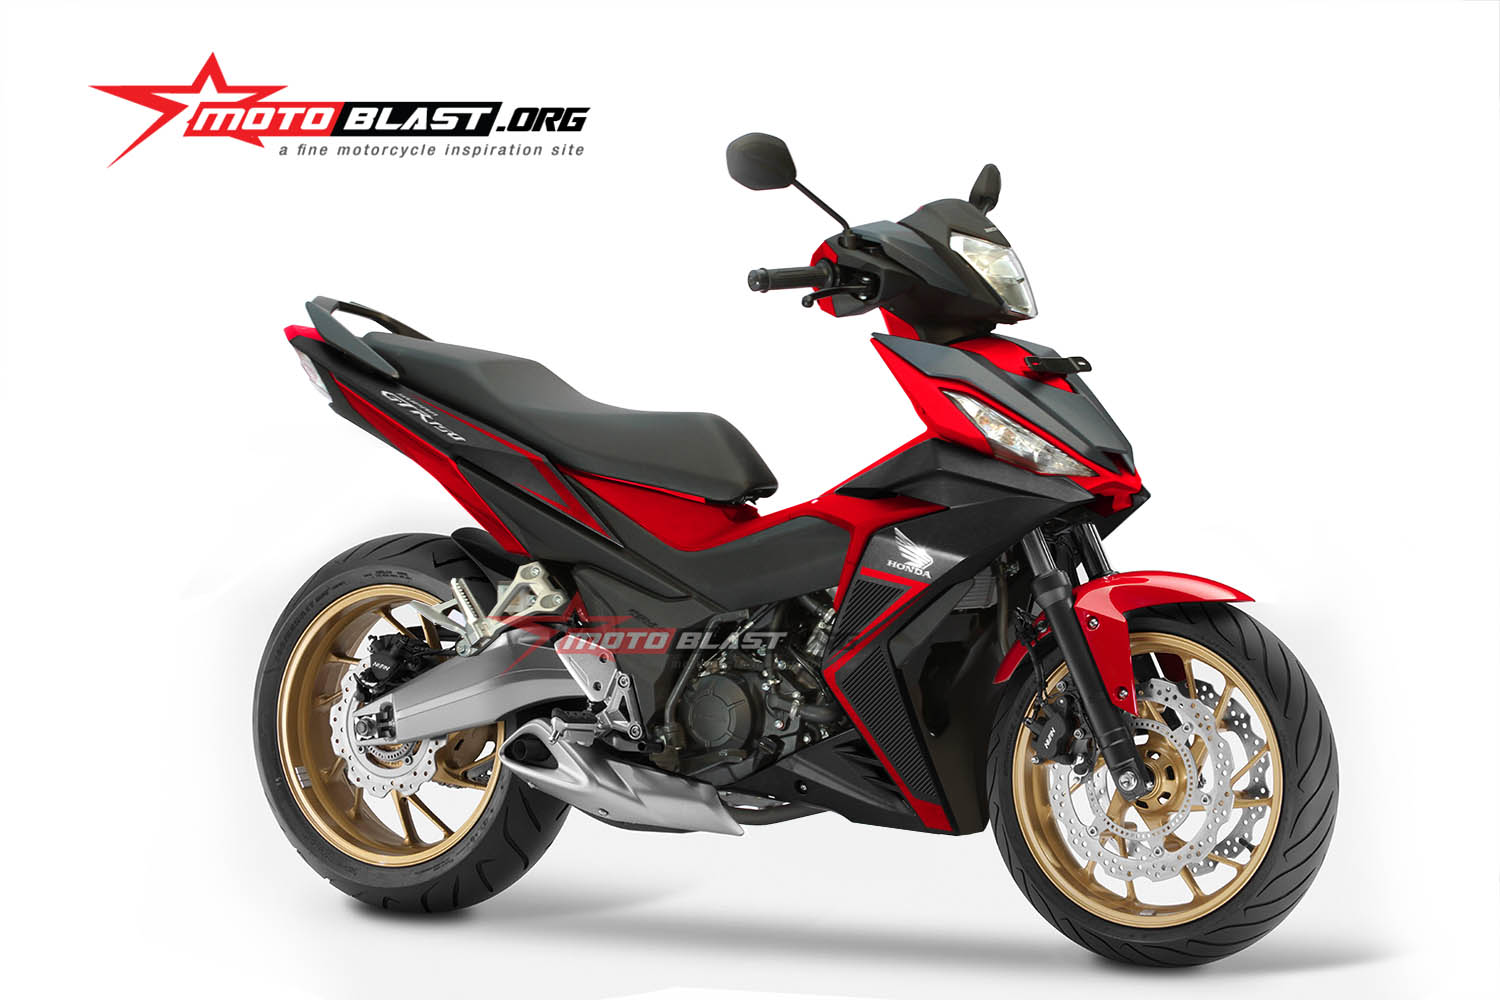 HOT Perdana Modifikasi Honda Supra GTR 150 Big Foot Racing